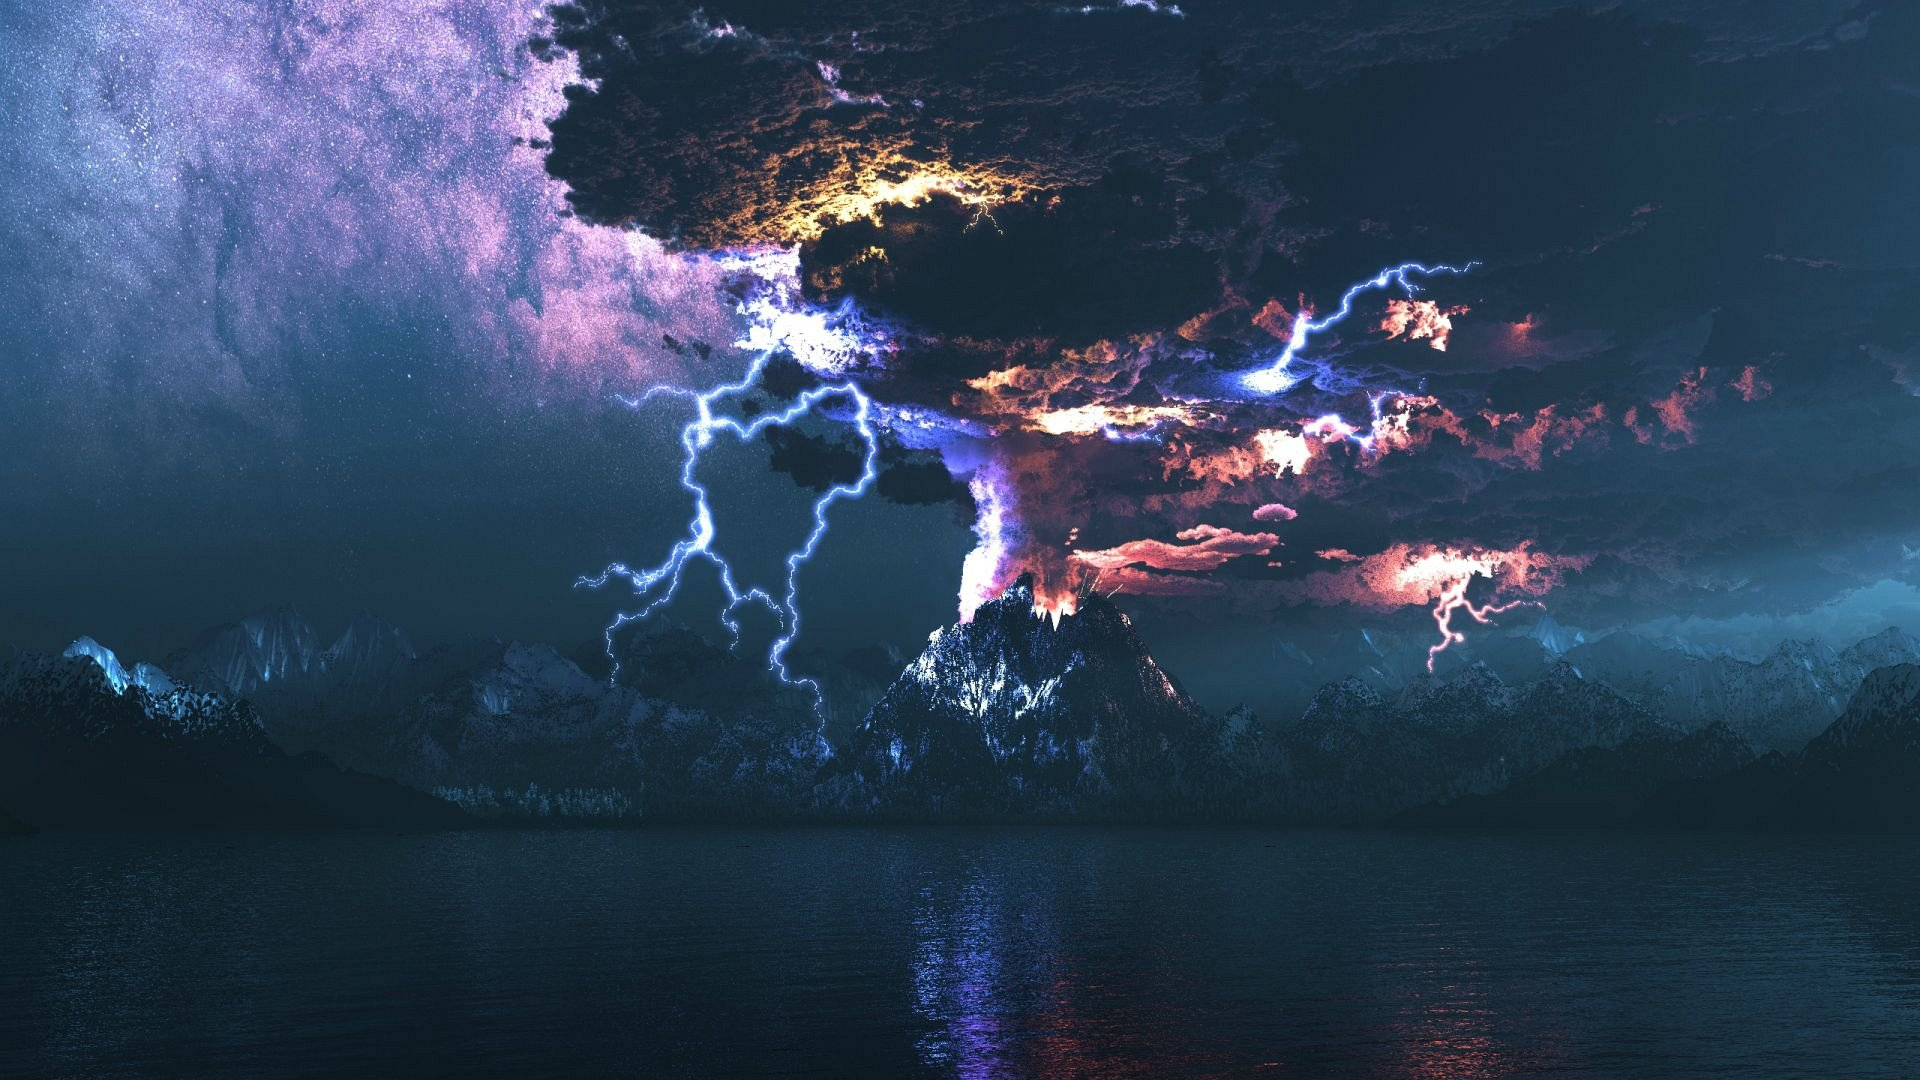 Awesome Storm HD Wallpaper Pack 22 download in 1920x1080